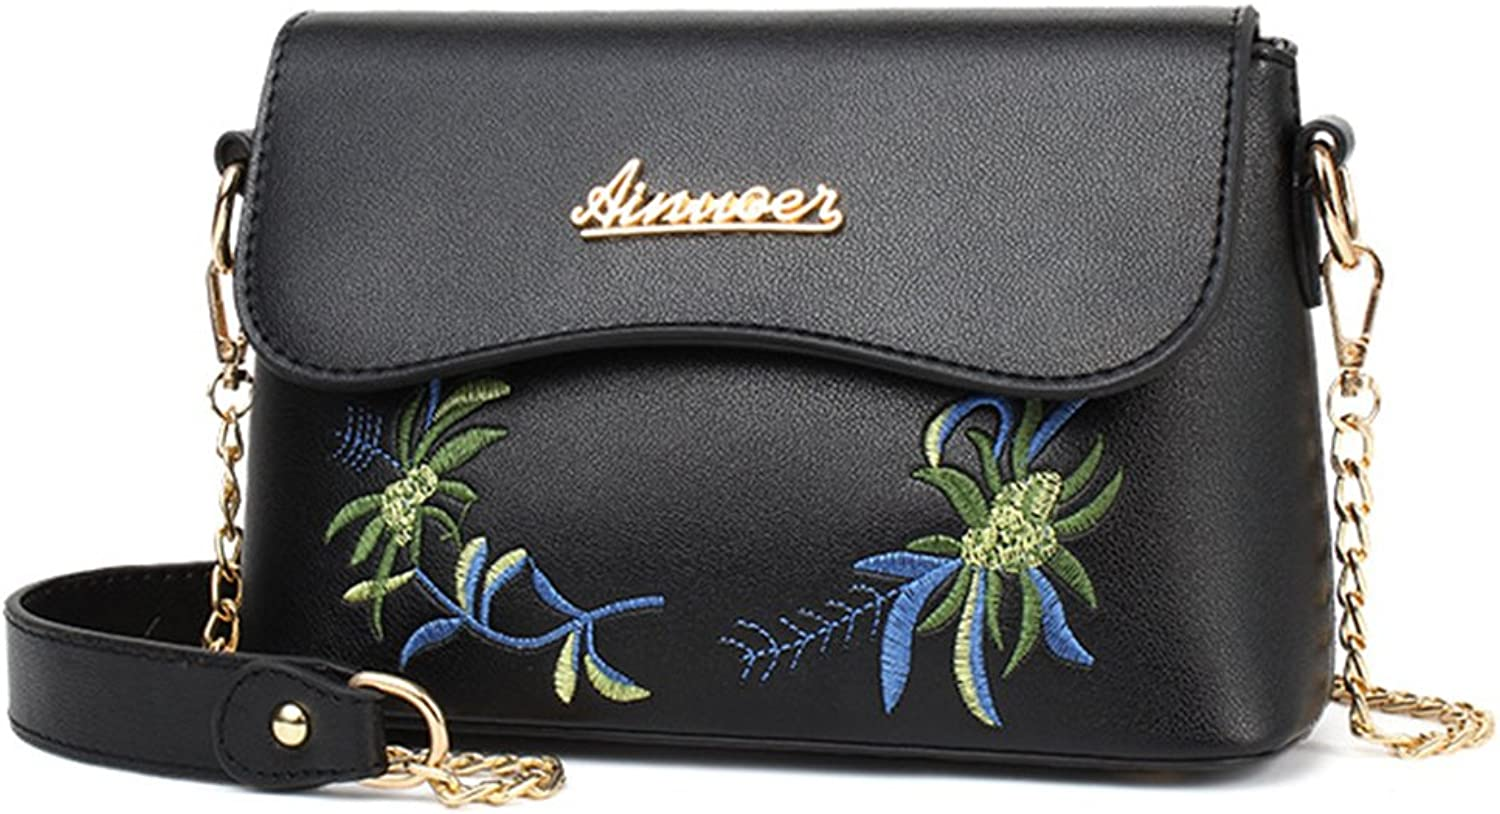 Turelifes Leather Crossbody Bags Small Shoulder Purse Cute Flower Embroidered Zipper Bag Chain Strap Wallet for Women